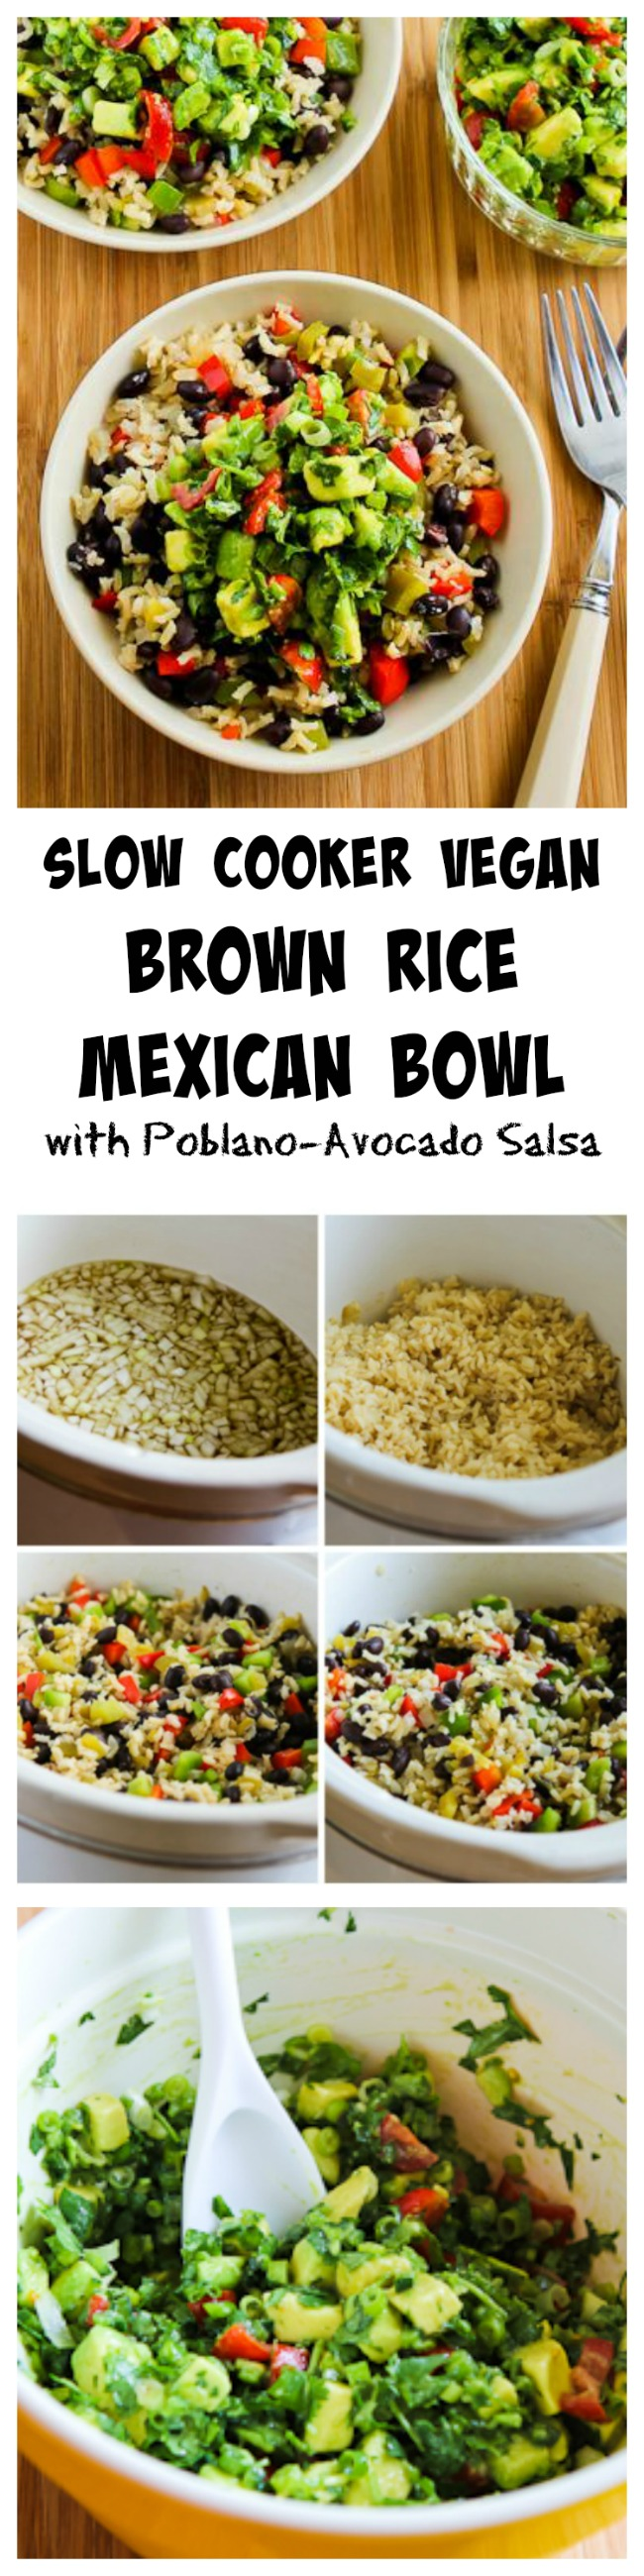 Slow Cooker Vegan Brown Rice Mexican Bowls